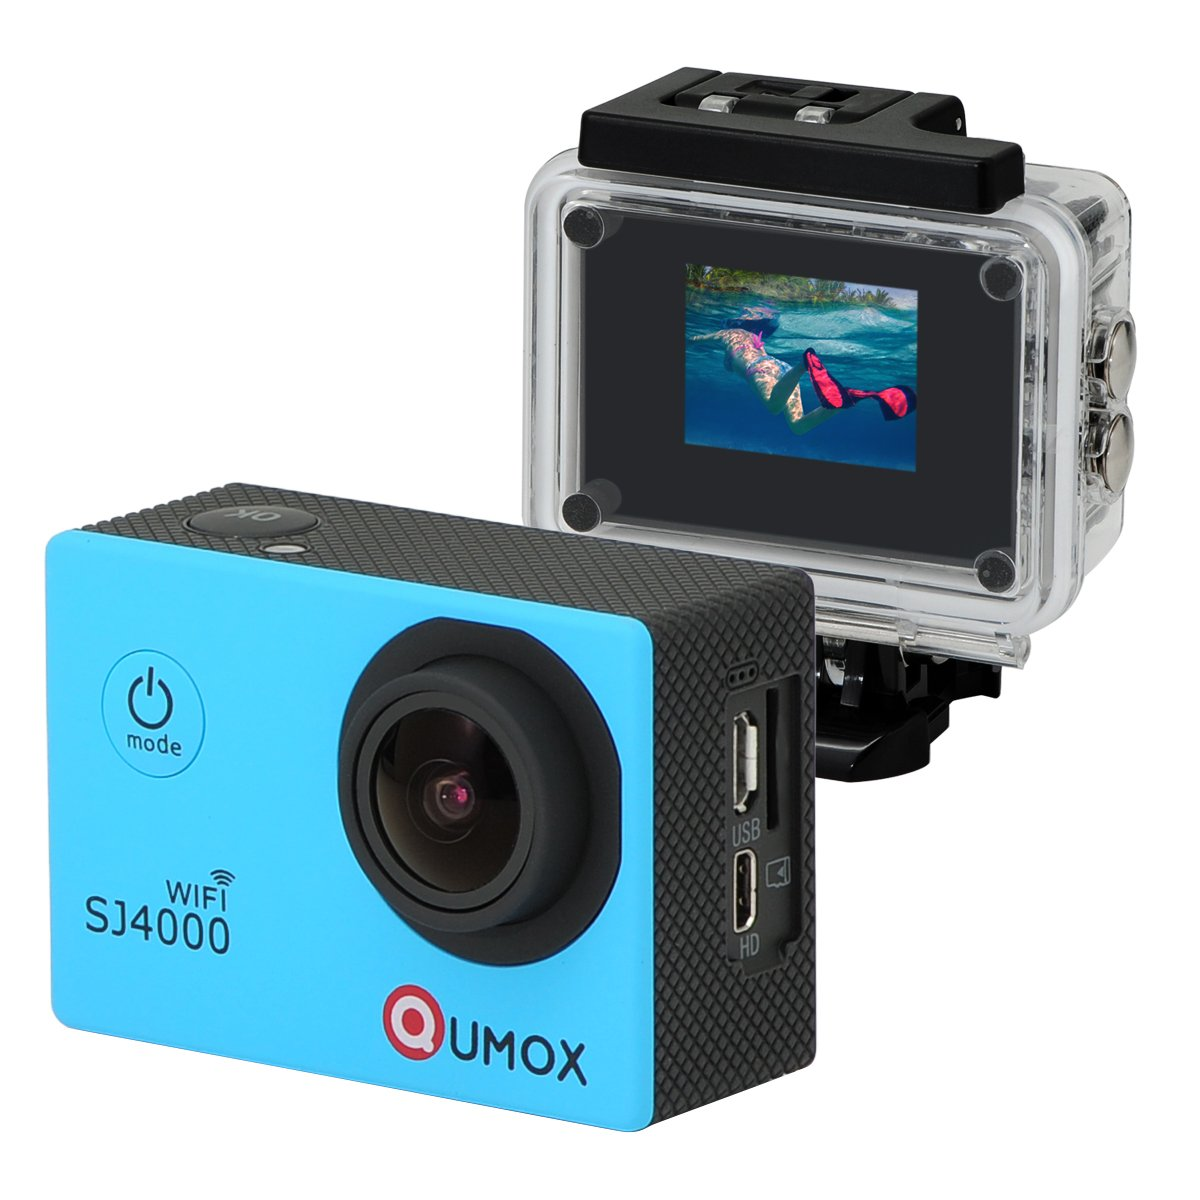 QUMOX WIFI Actioncam SJ4000 Action Sport Kamera Camera Waterproof Full HD 1080p Video Helmkamera Gelb mit Verbesserten Batterien und Zubehör Kits und Wasserdichtes Gehäuse Z035U